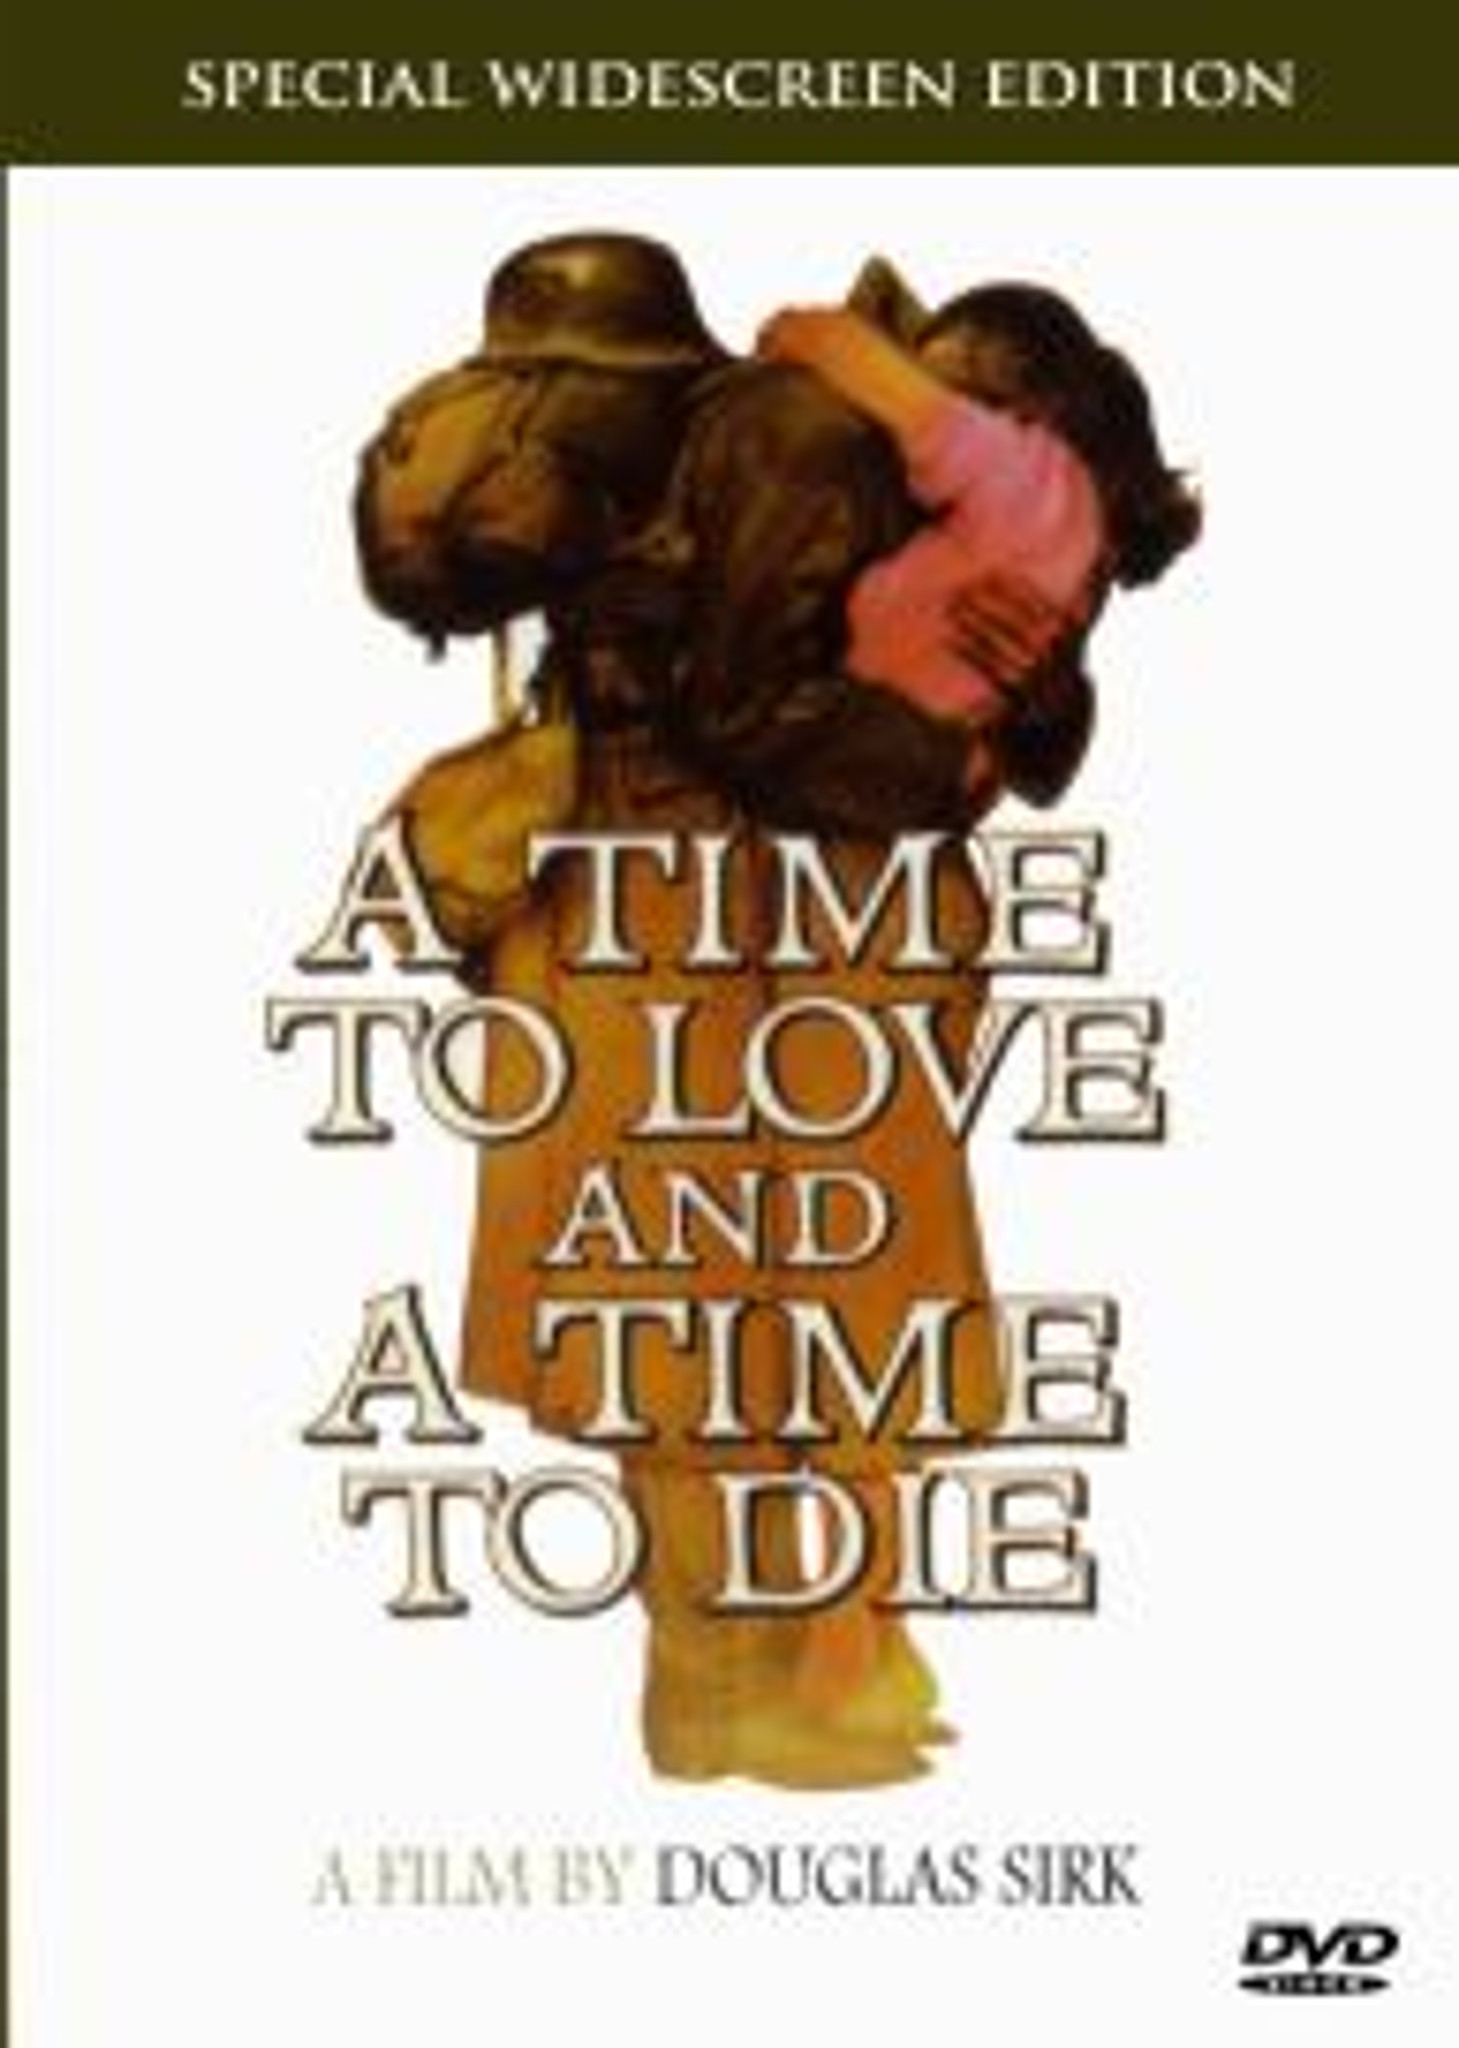 A Time to Love and A Time to Die Dvd